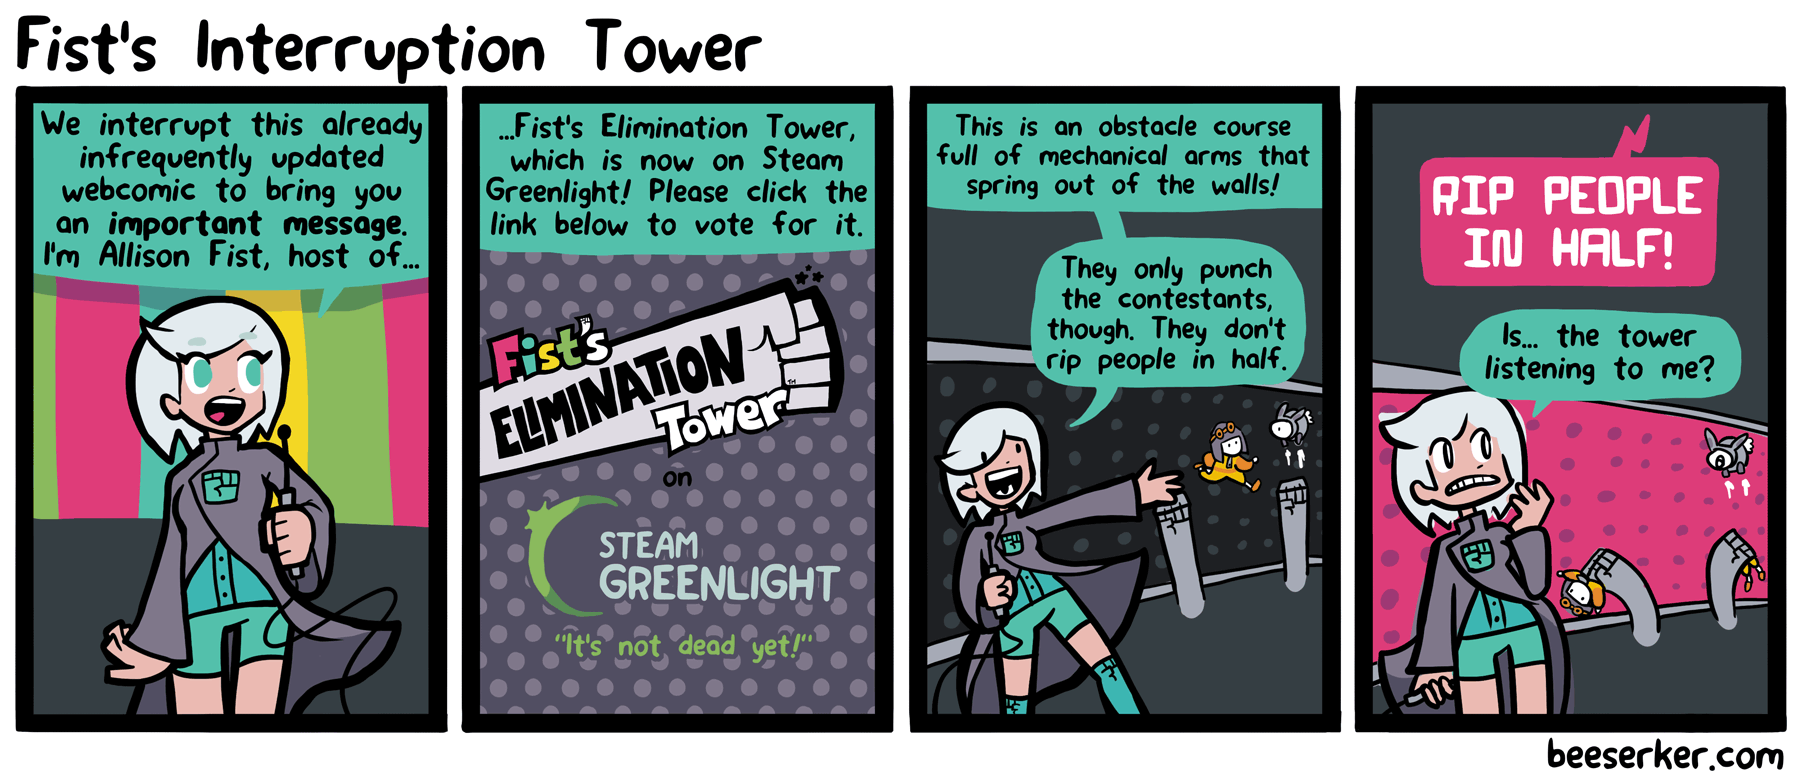 Fist's Interruption Tower